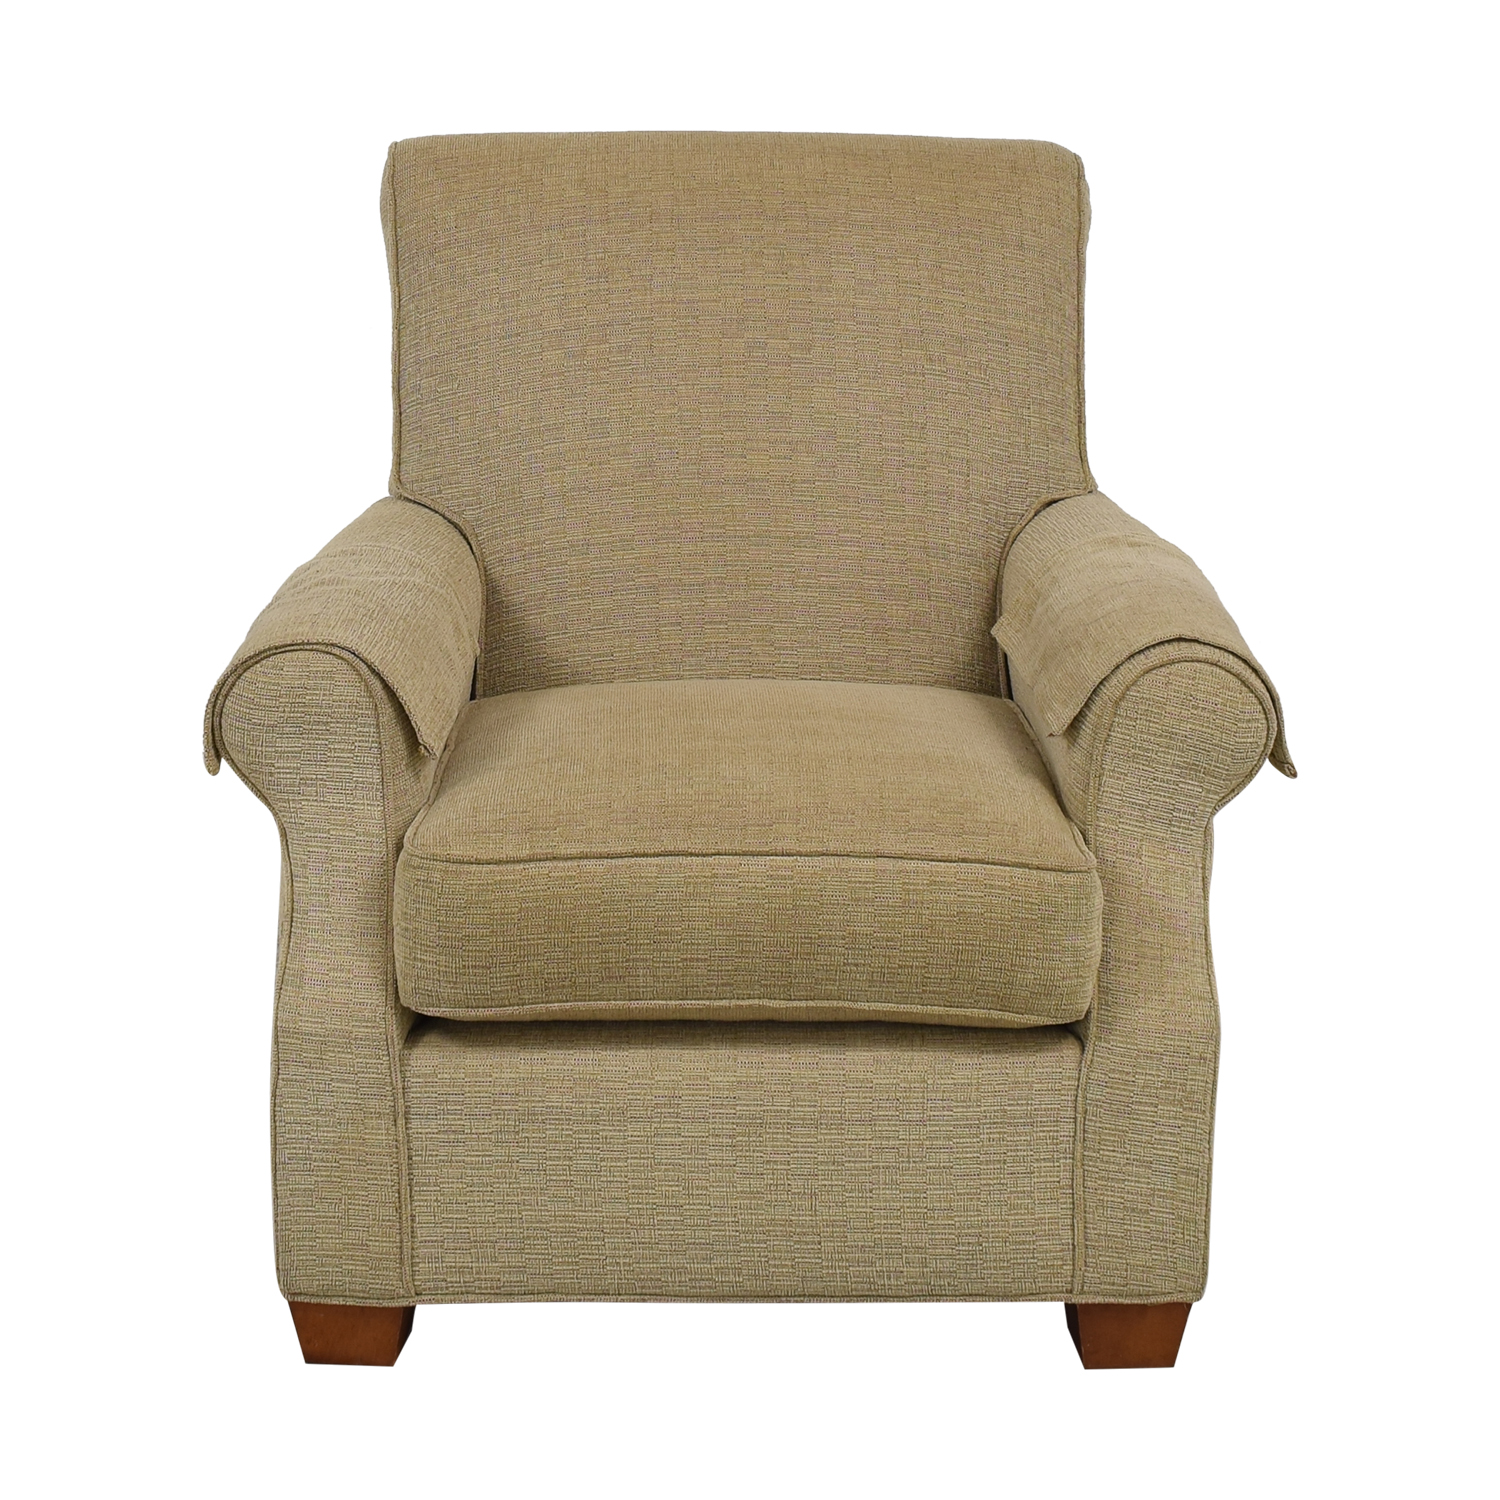 shop Macy's Upholstered Accent Chair Macy's Accent Chairs